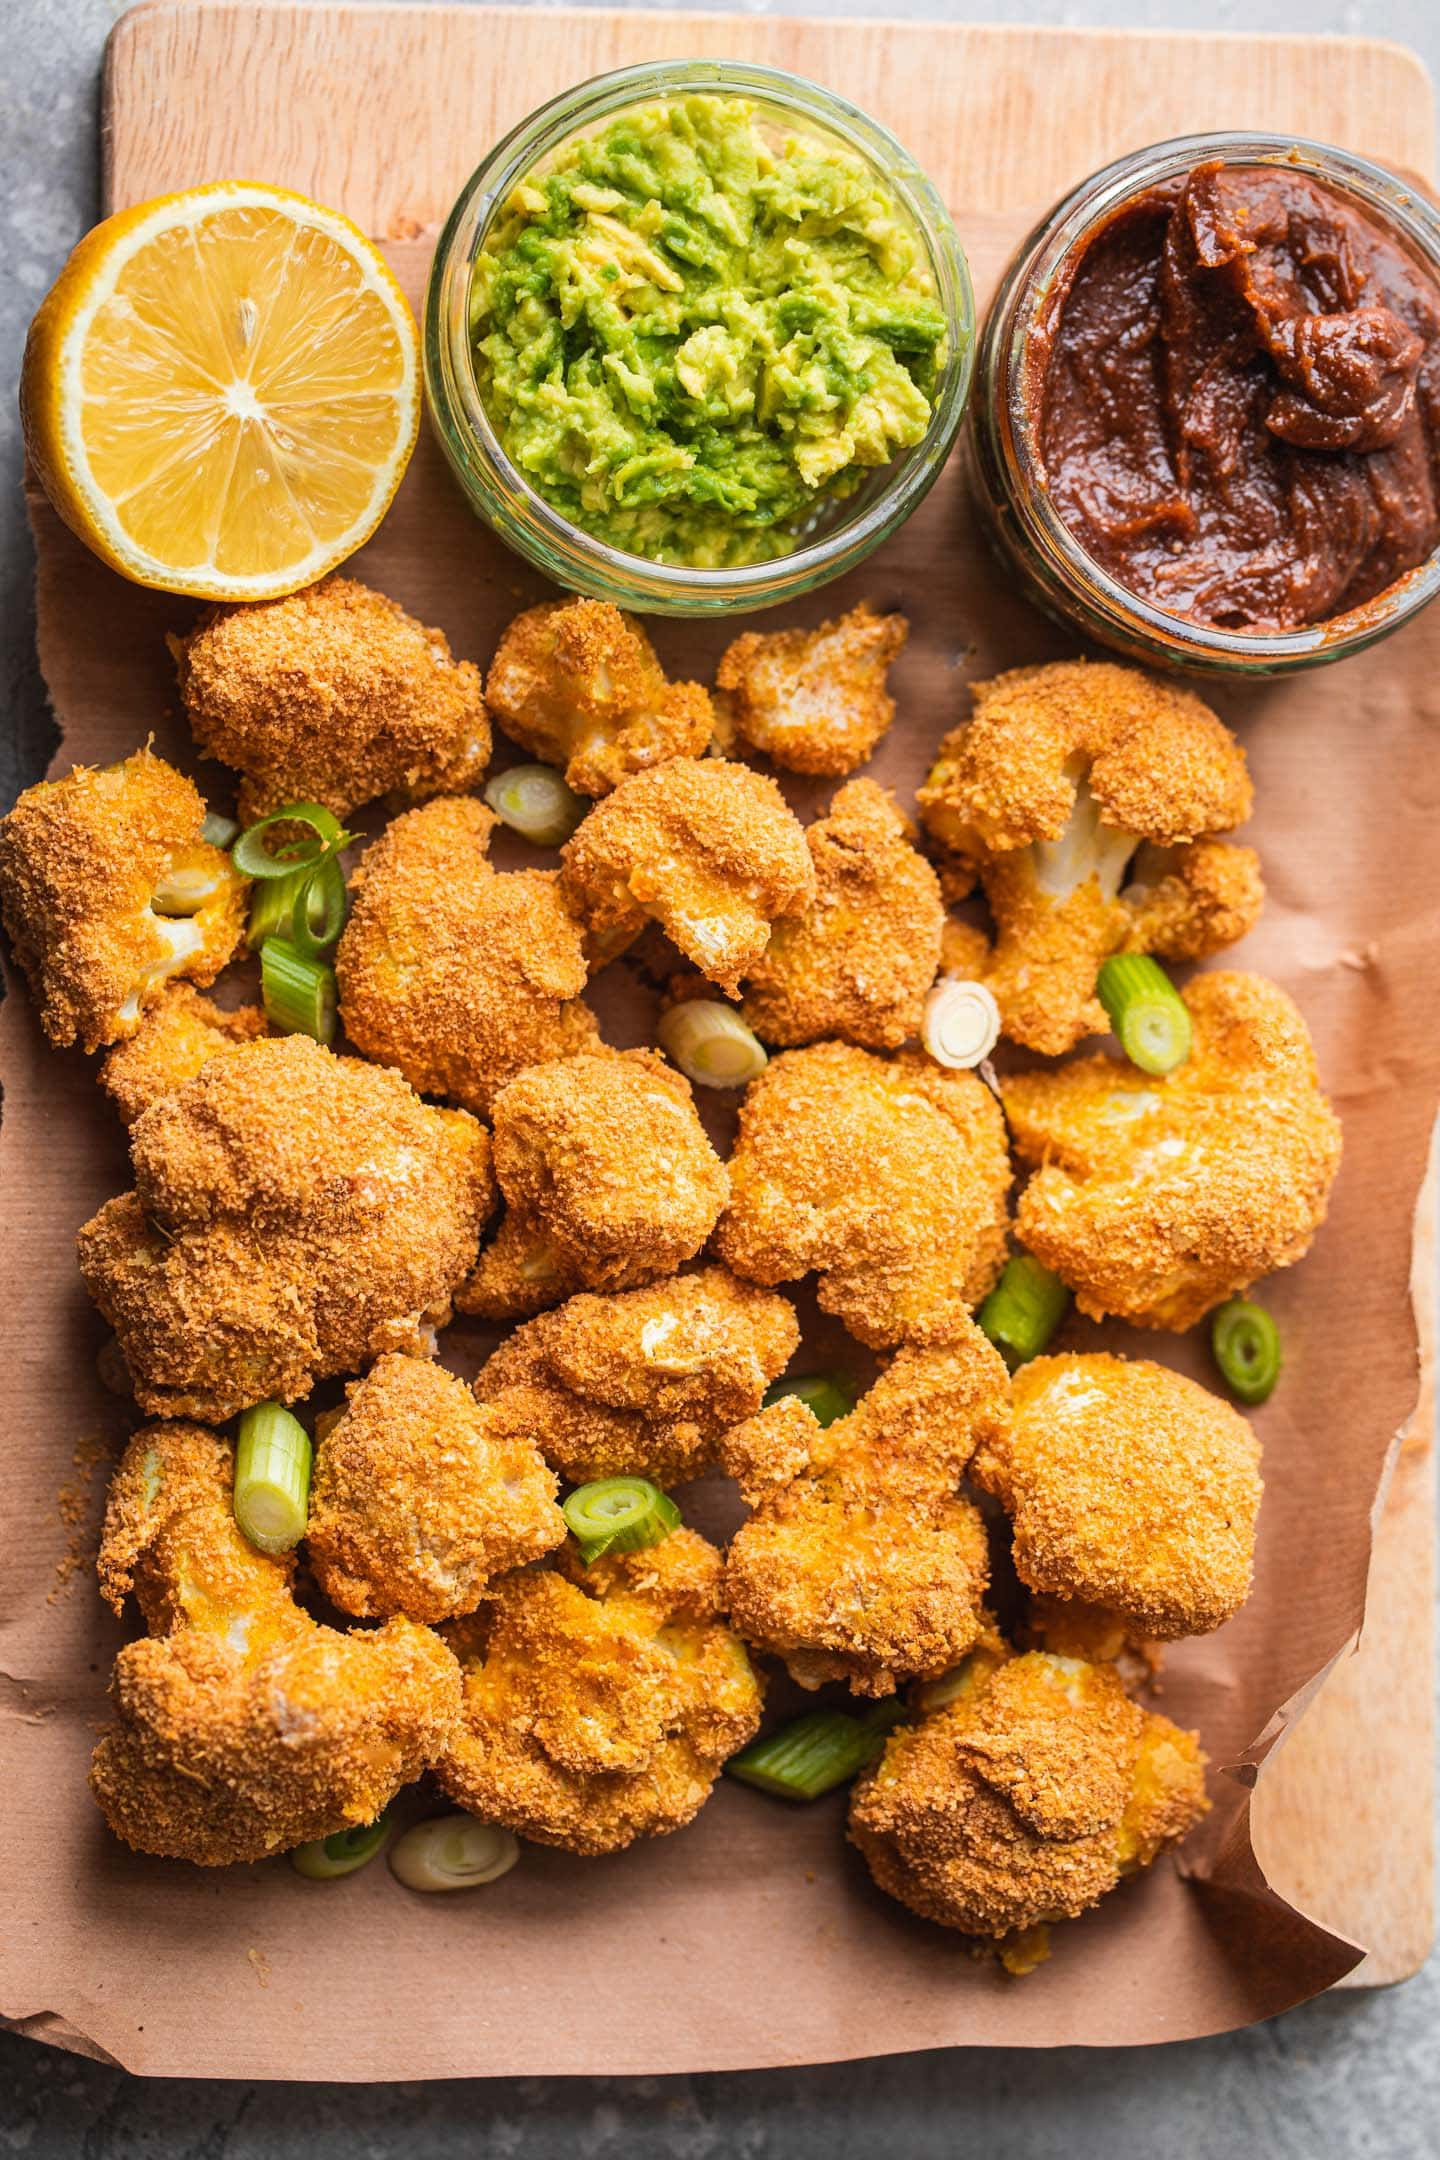 Breaded cauliflower on a wooden board with mashed avocado and almond dip